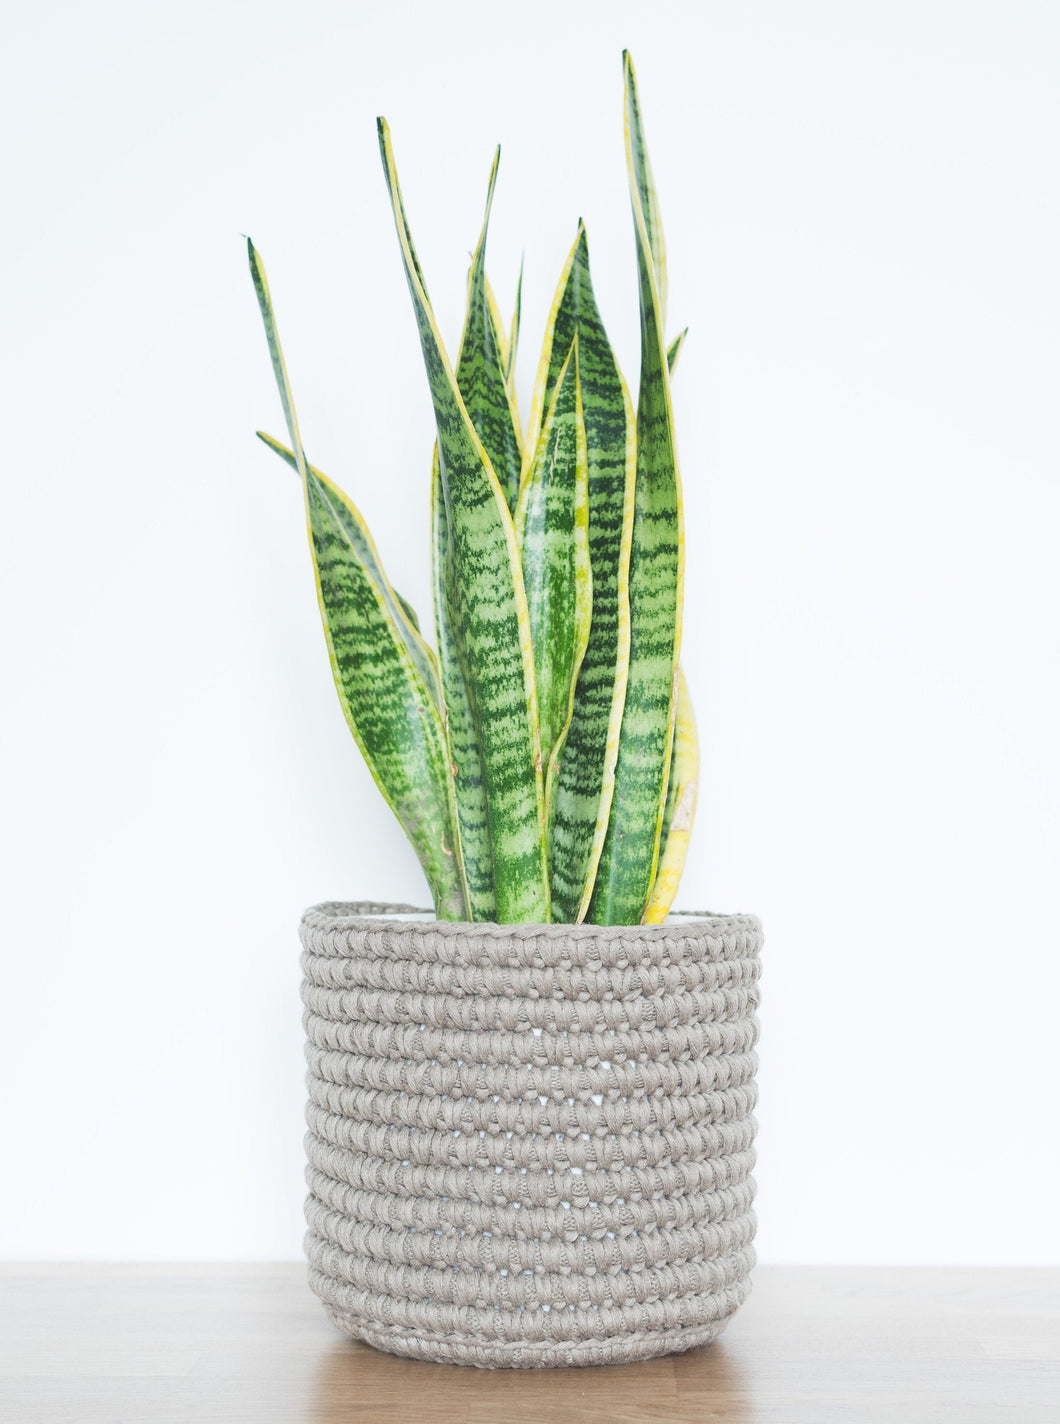 Medium eco plant pot - taupe - Knttd coloured handmade plant pot cover made from recycled cotton yarn with watertight inner pot made from recycled plastic